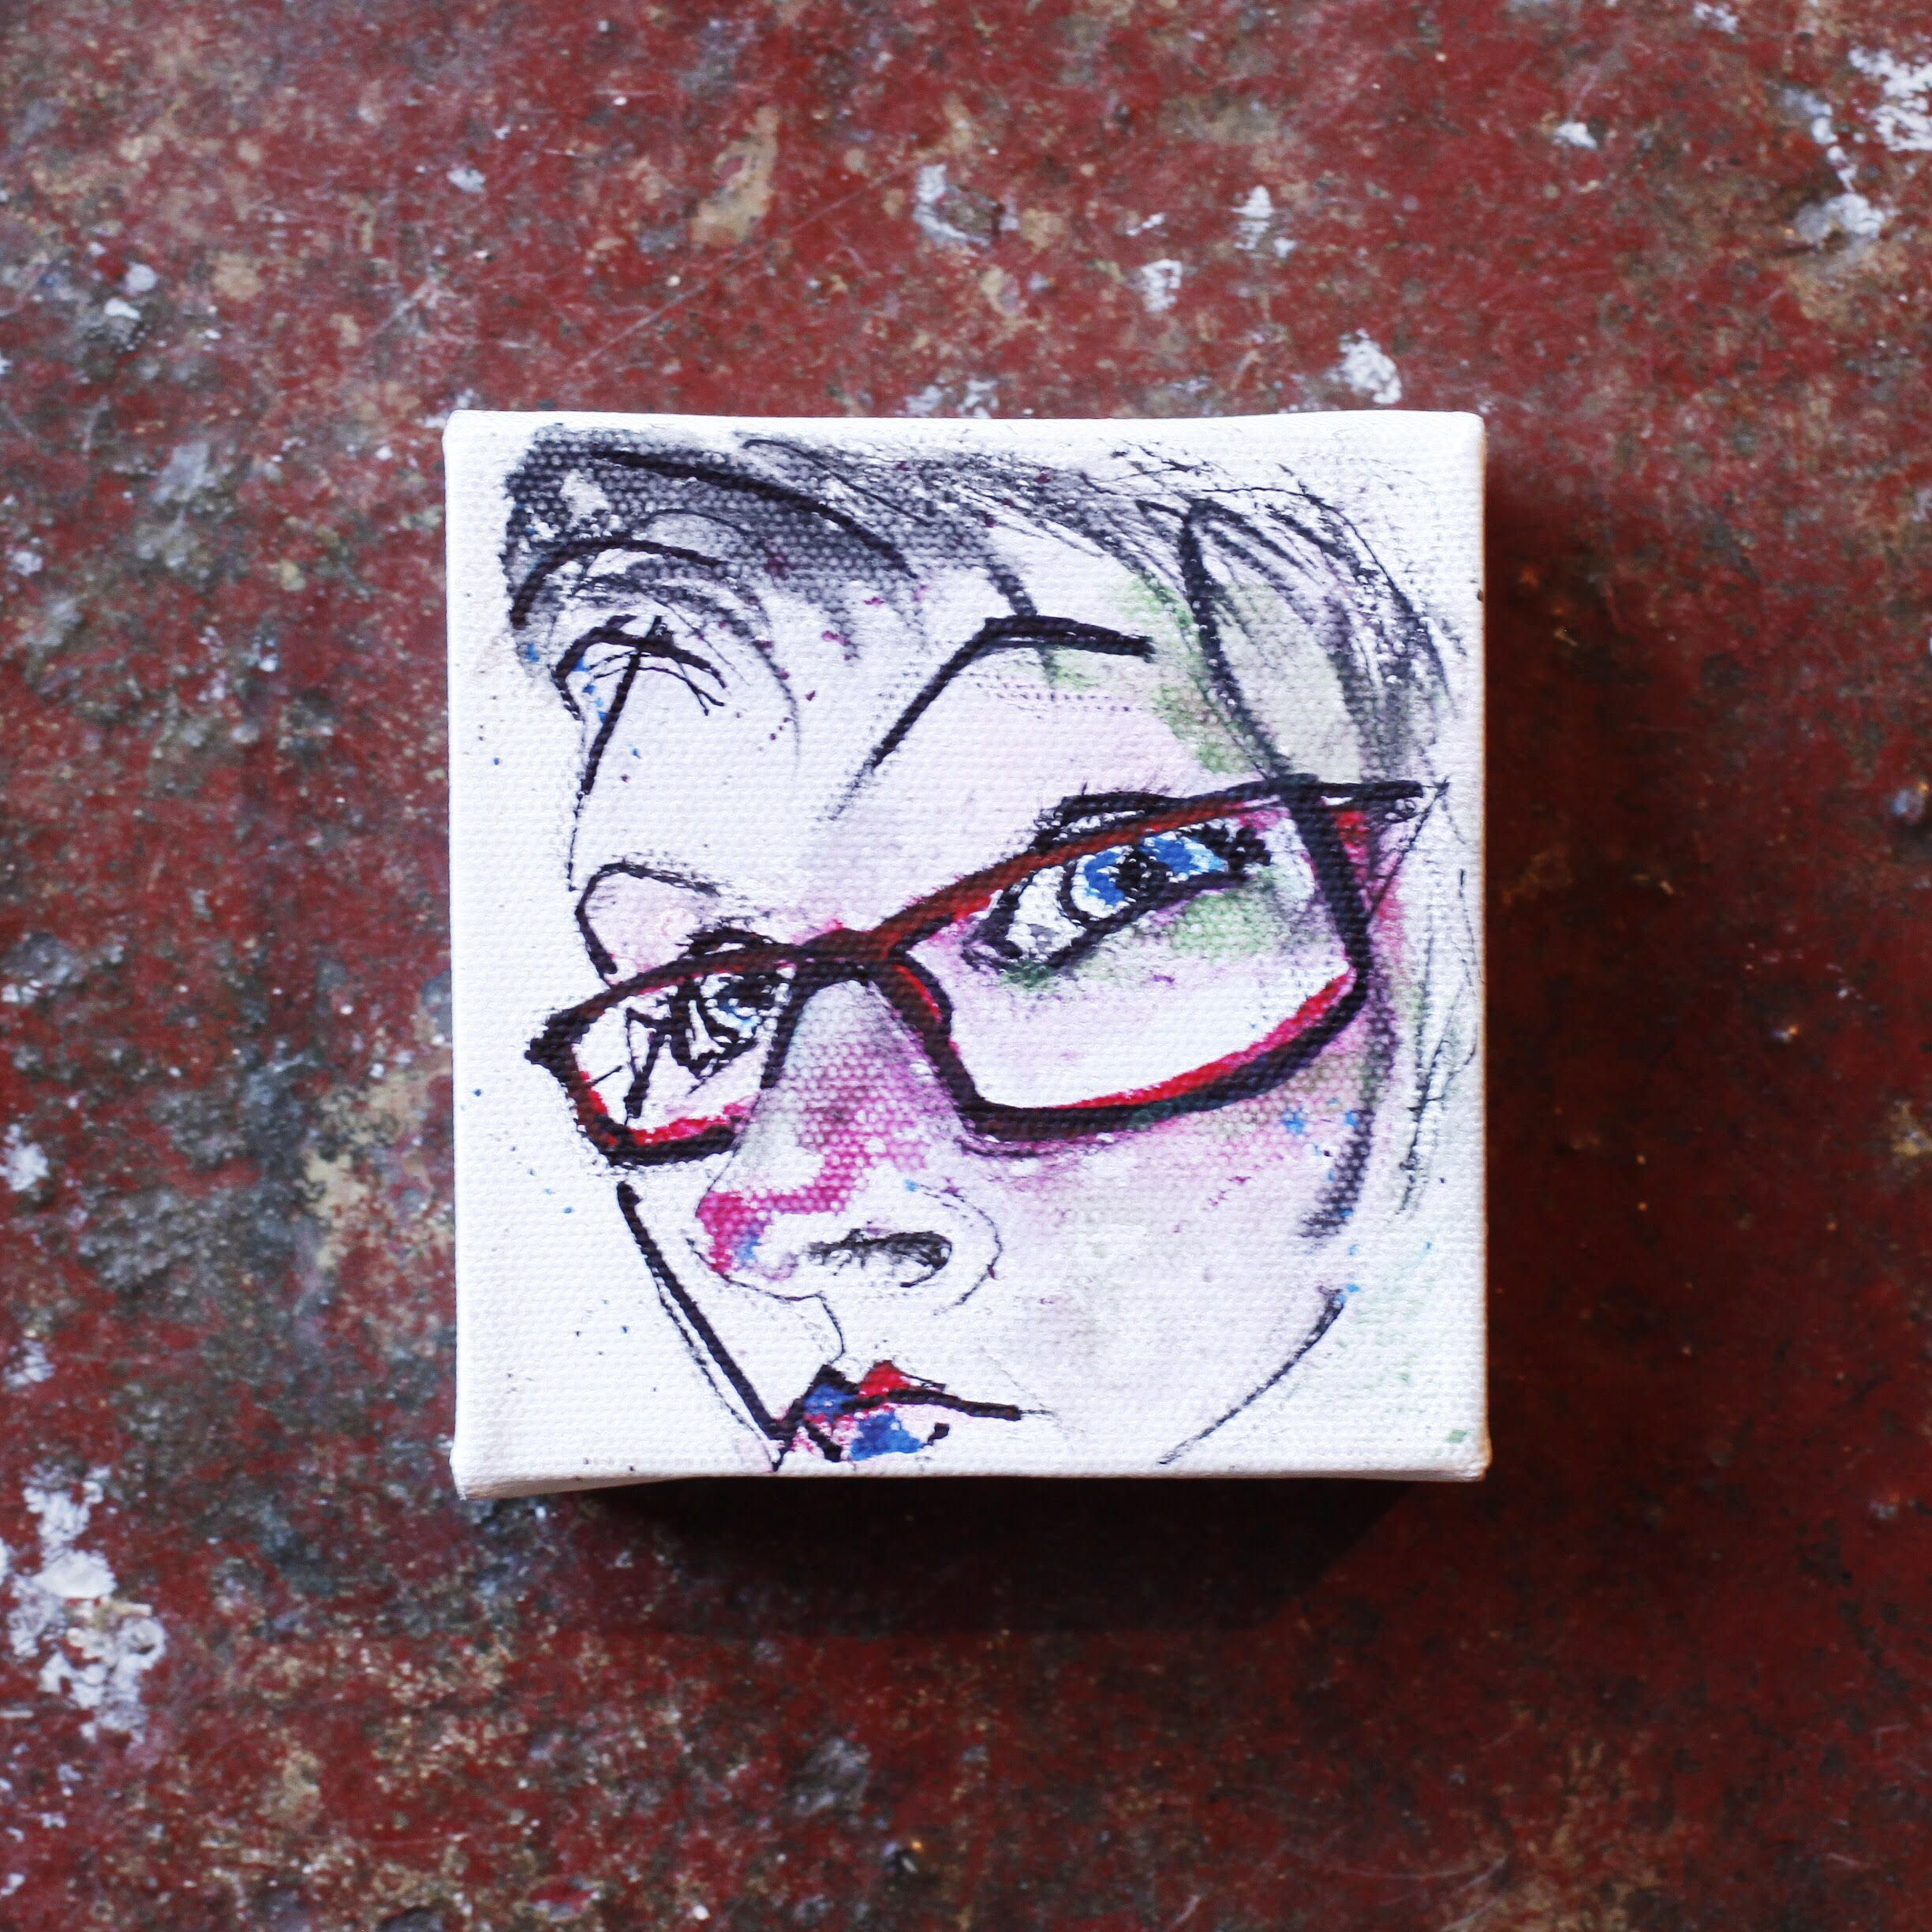 Self portrait by Jane Robson from Australia  Take part in our latest creative challenge, The Pen Pal Painting Exchange: Self Portrait!